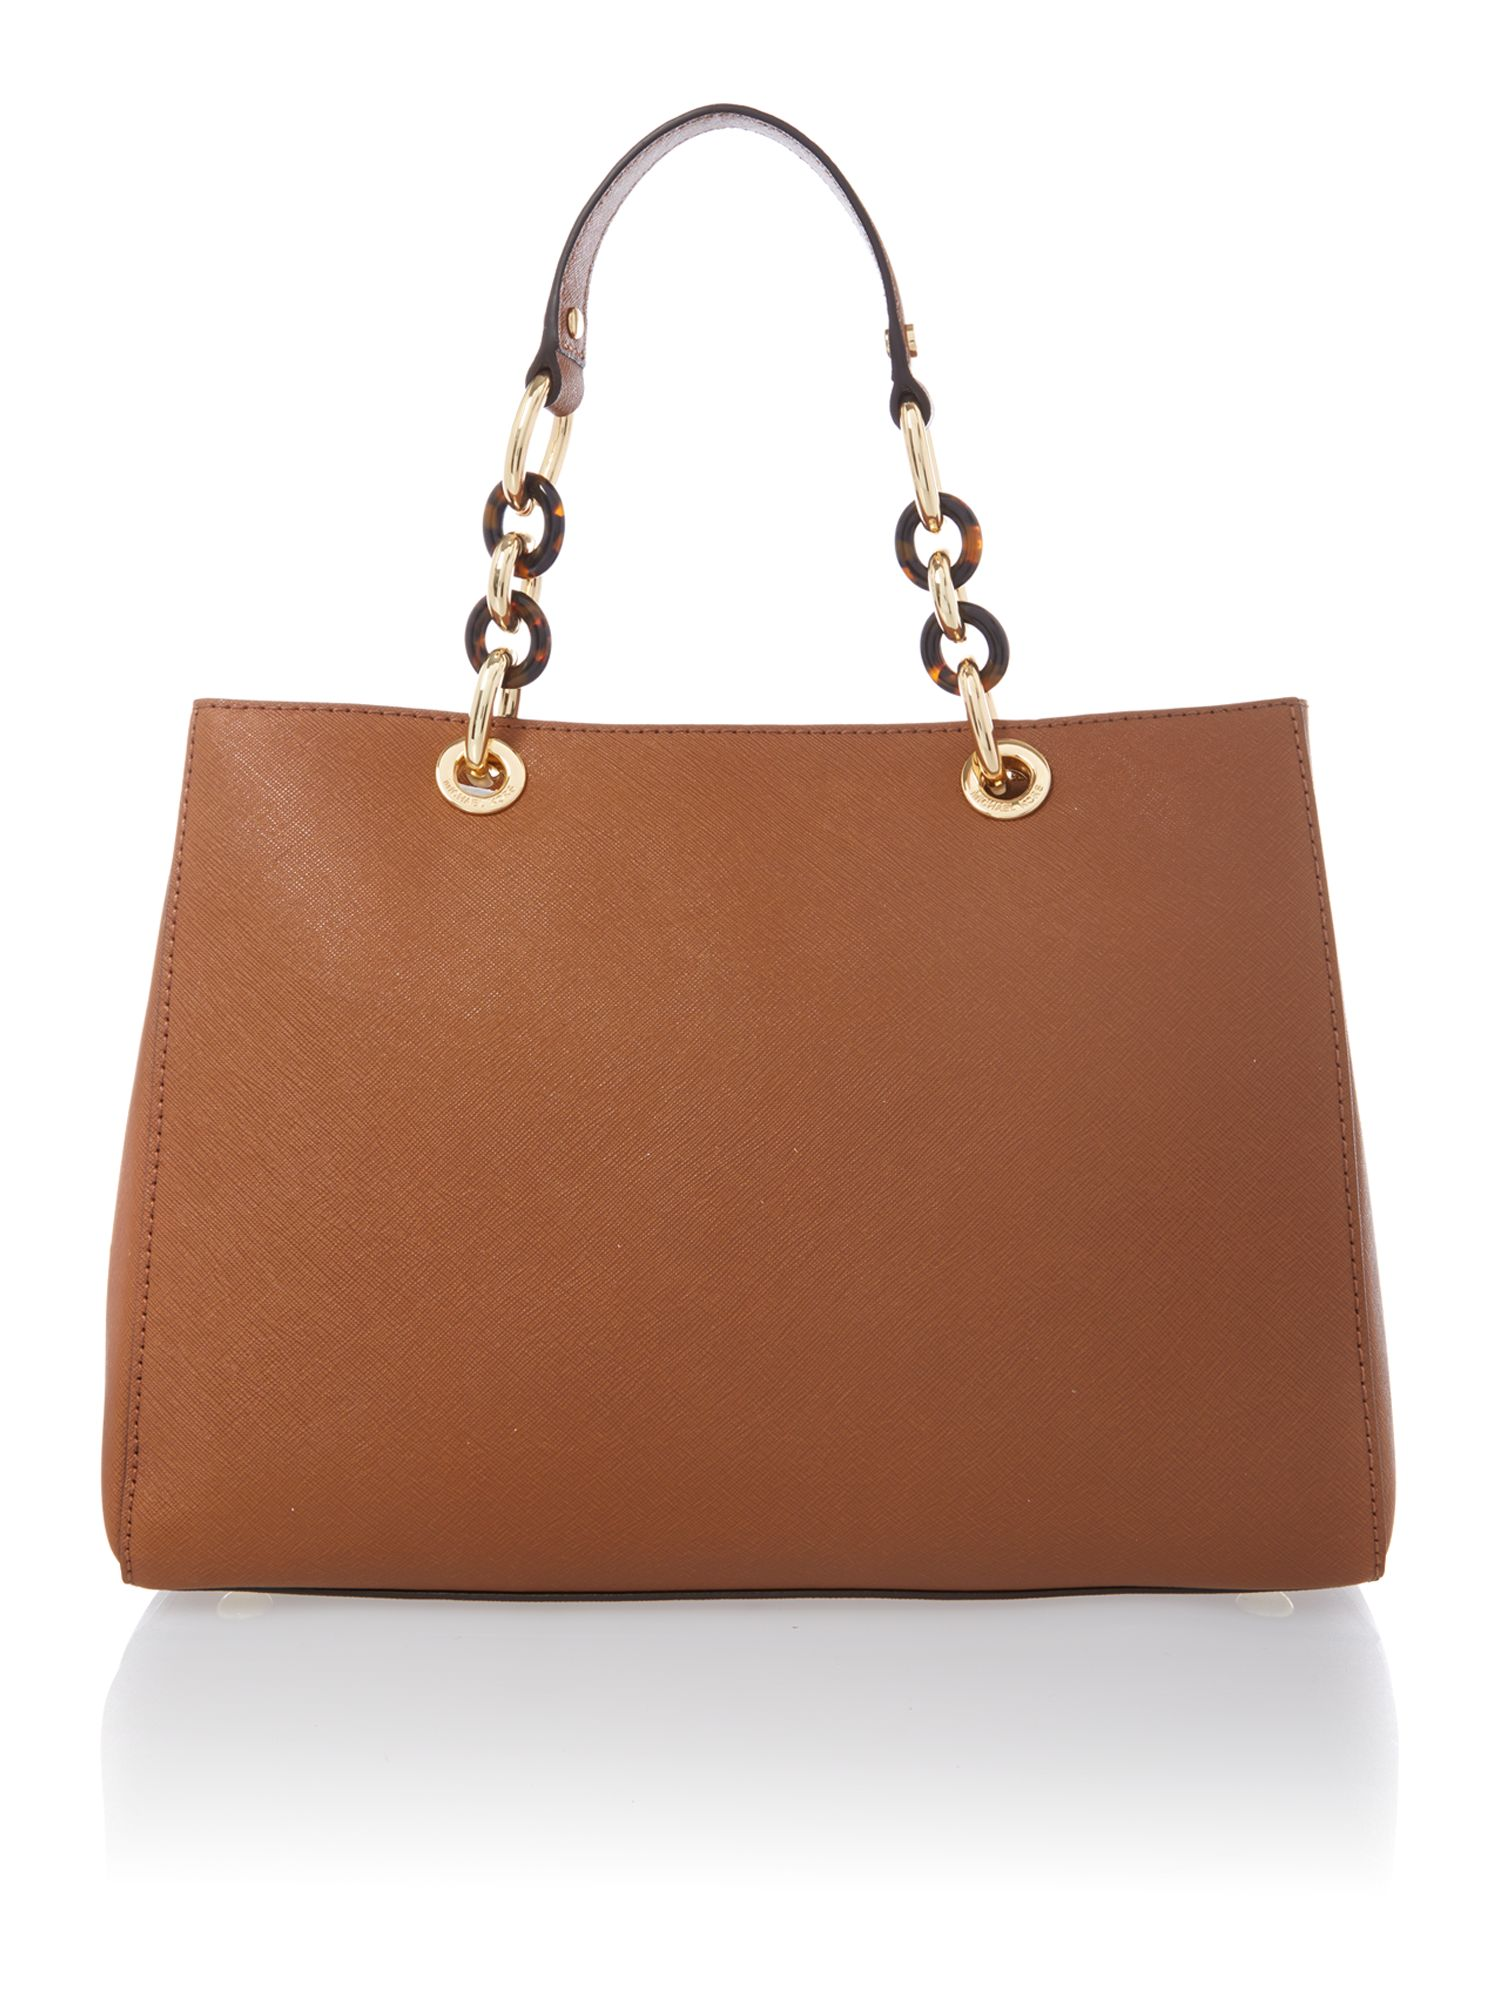 Cynthia tan ew tote bag